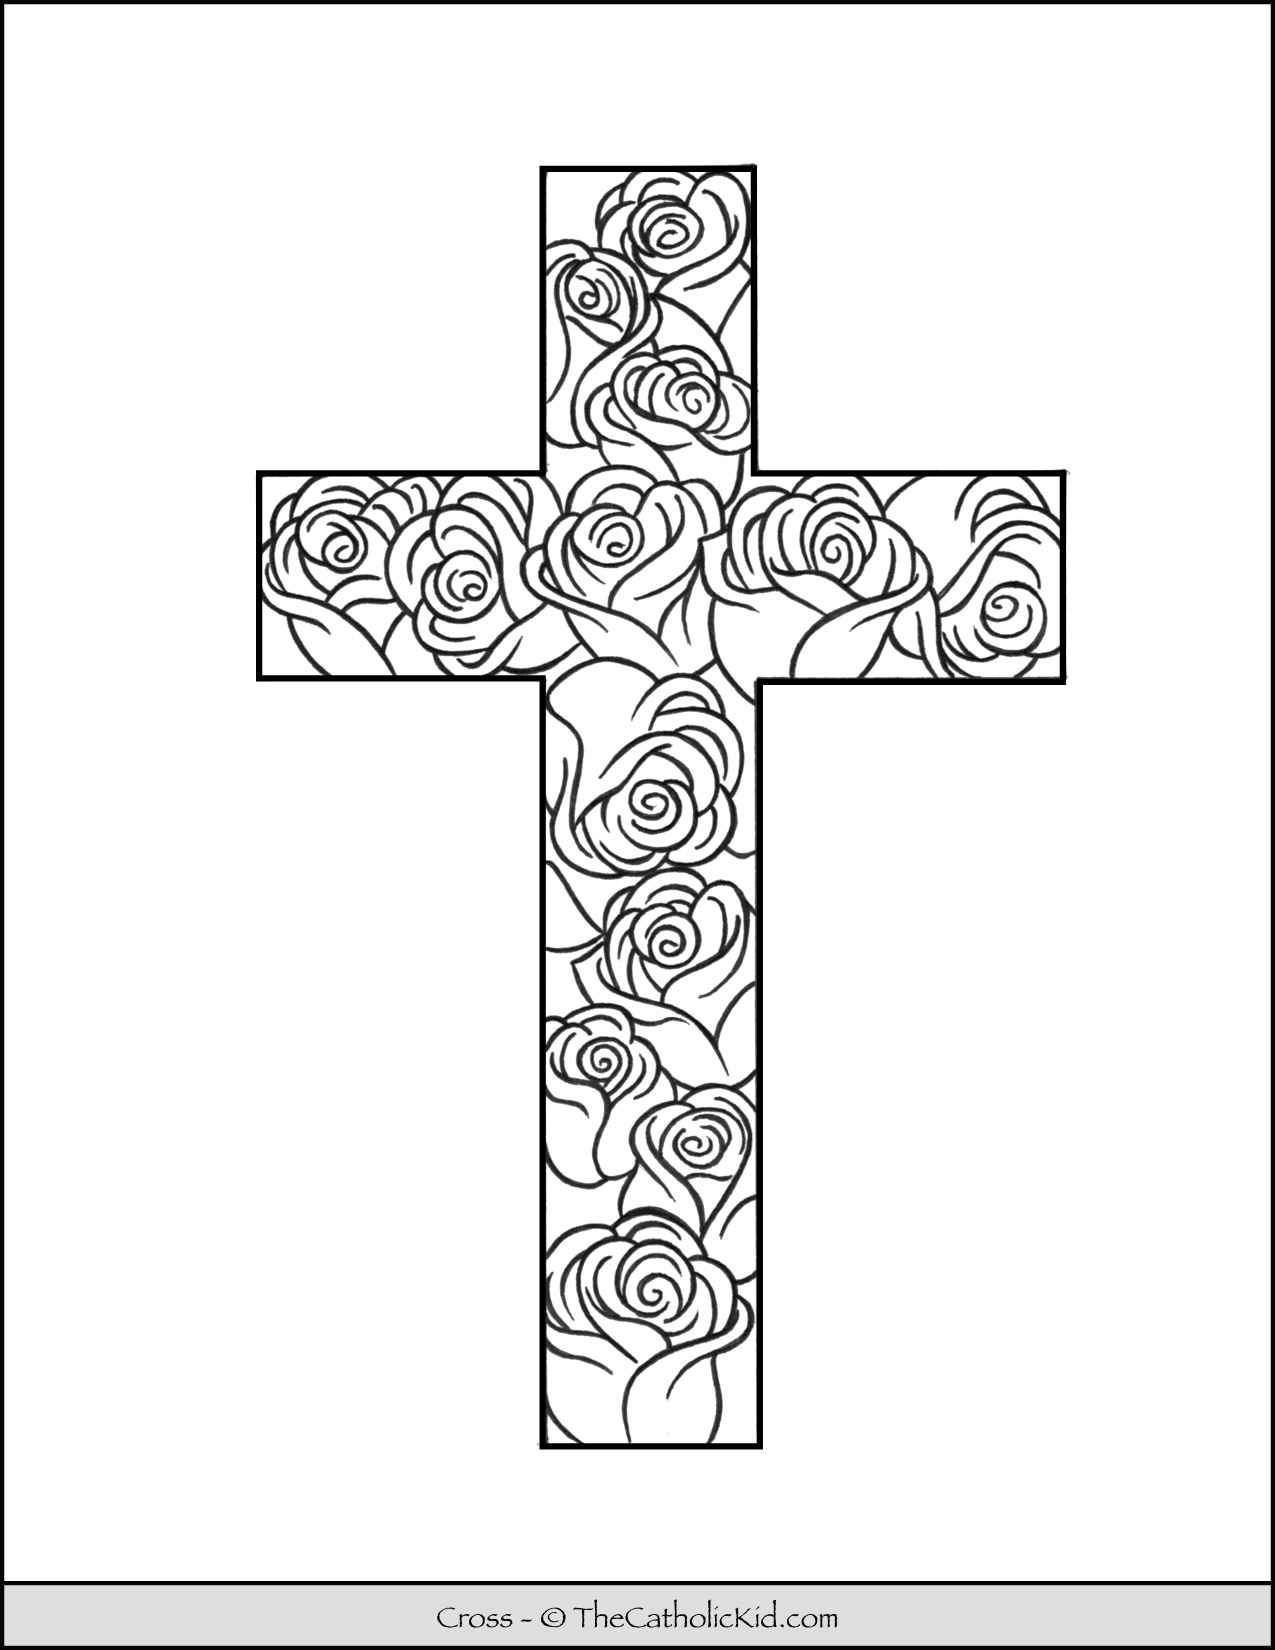 coloring cross pictures cross coloring page stained glass pattern pictures cross coloring